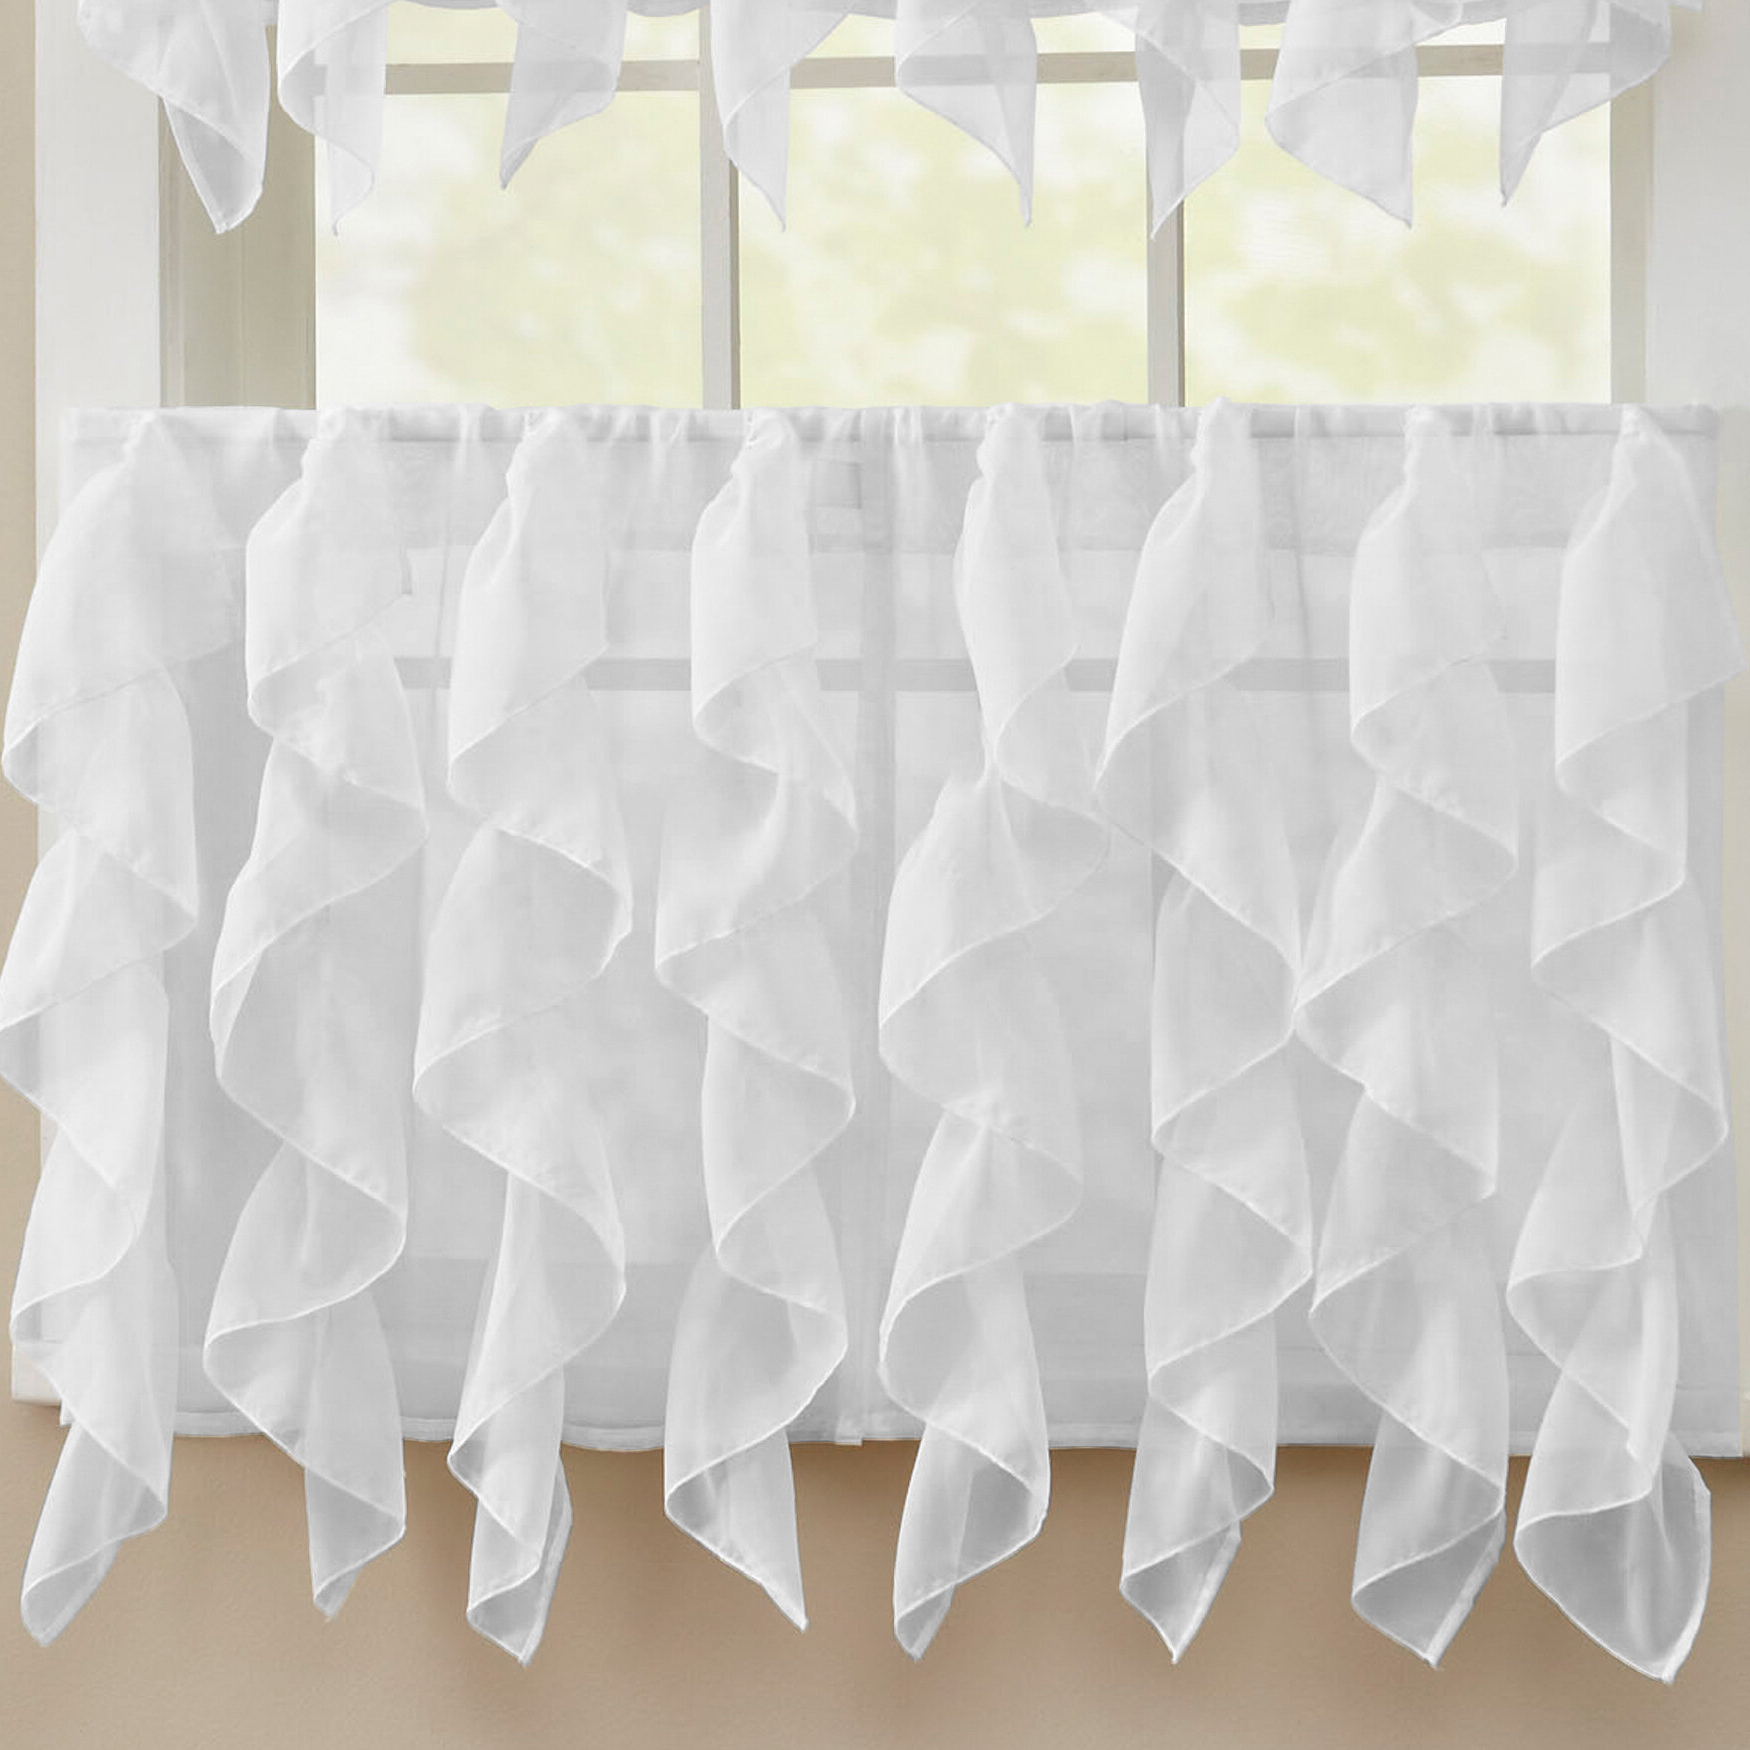 Sheer Voile Waterfall Ruffled Tier Single Curtain Panels In Most Recently Released Frye Elegant Sheer Voile Vertical Ruffle Window Cafe Curtain (View 11 of 20)